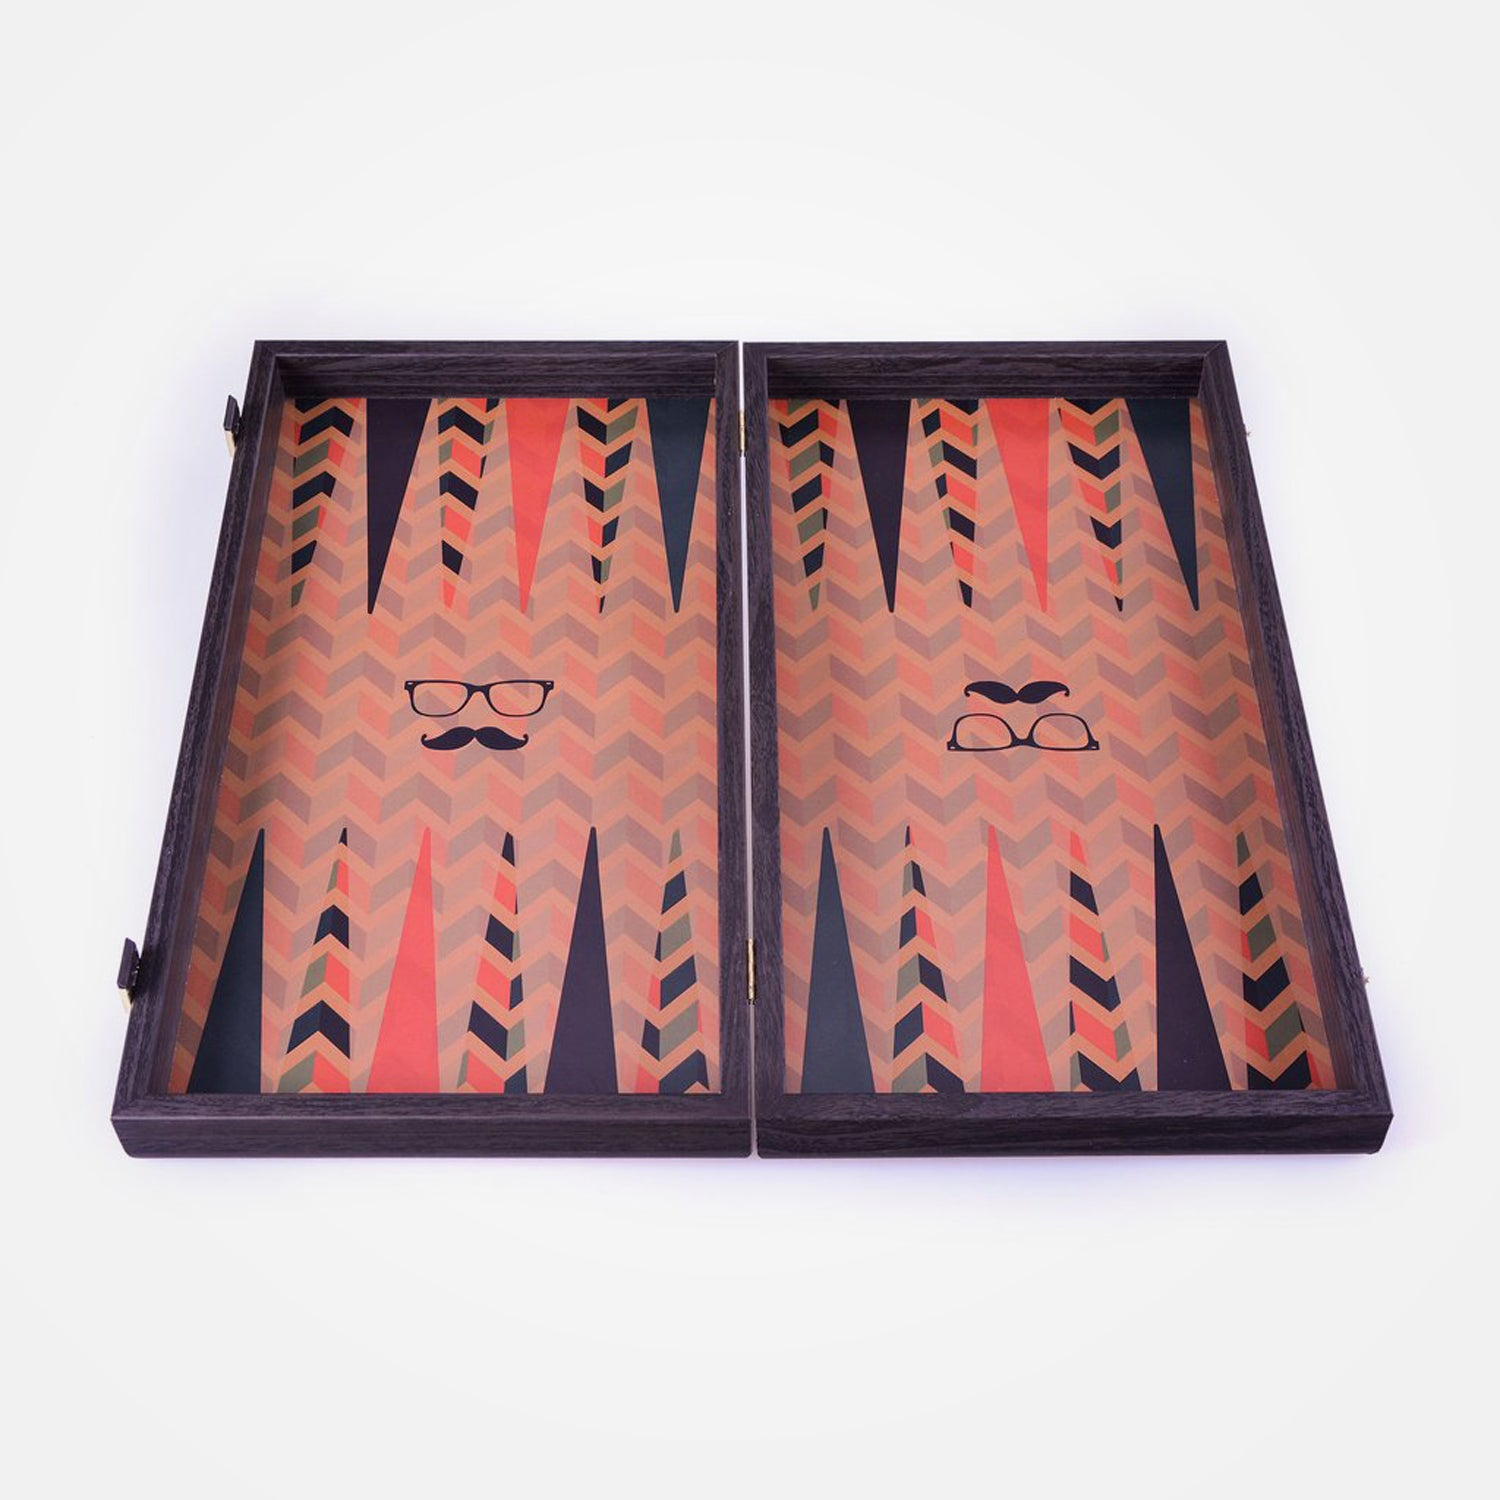 Hipster Style Backgammon Set by Manopoulos